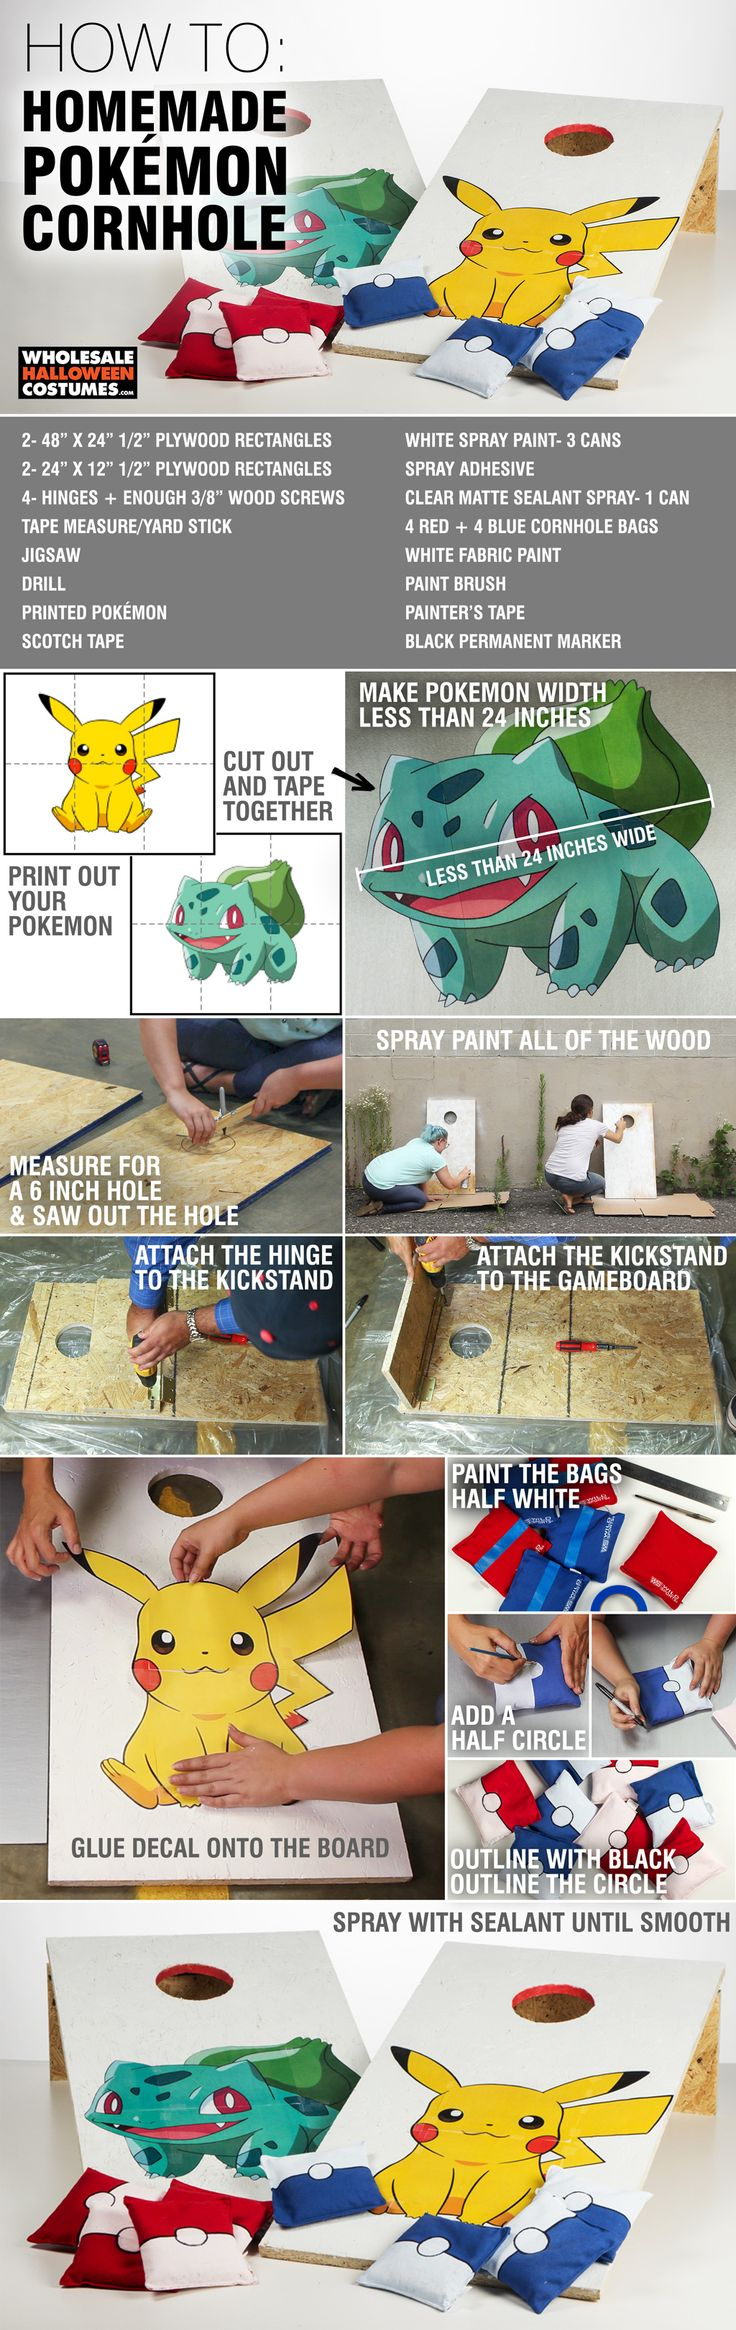 DIY your very own Pokemon Cornhole to play while you're charging up your battery to play more PokemonGo!